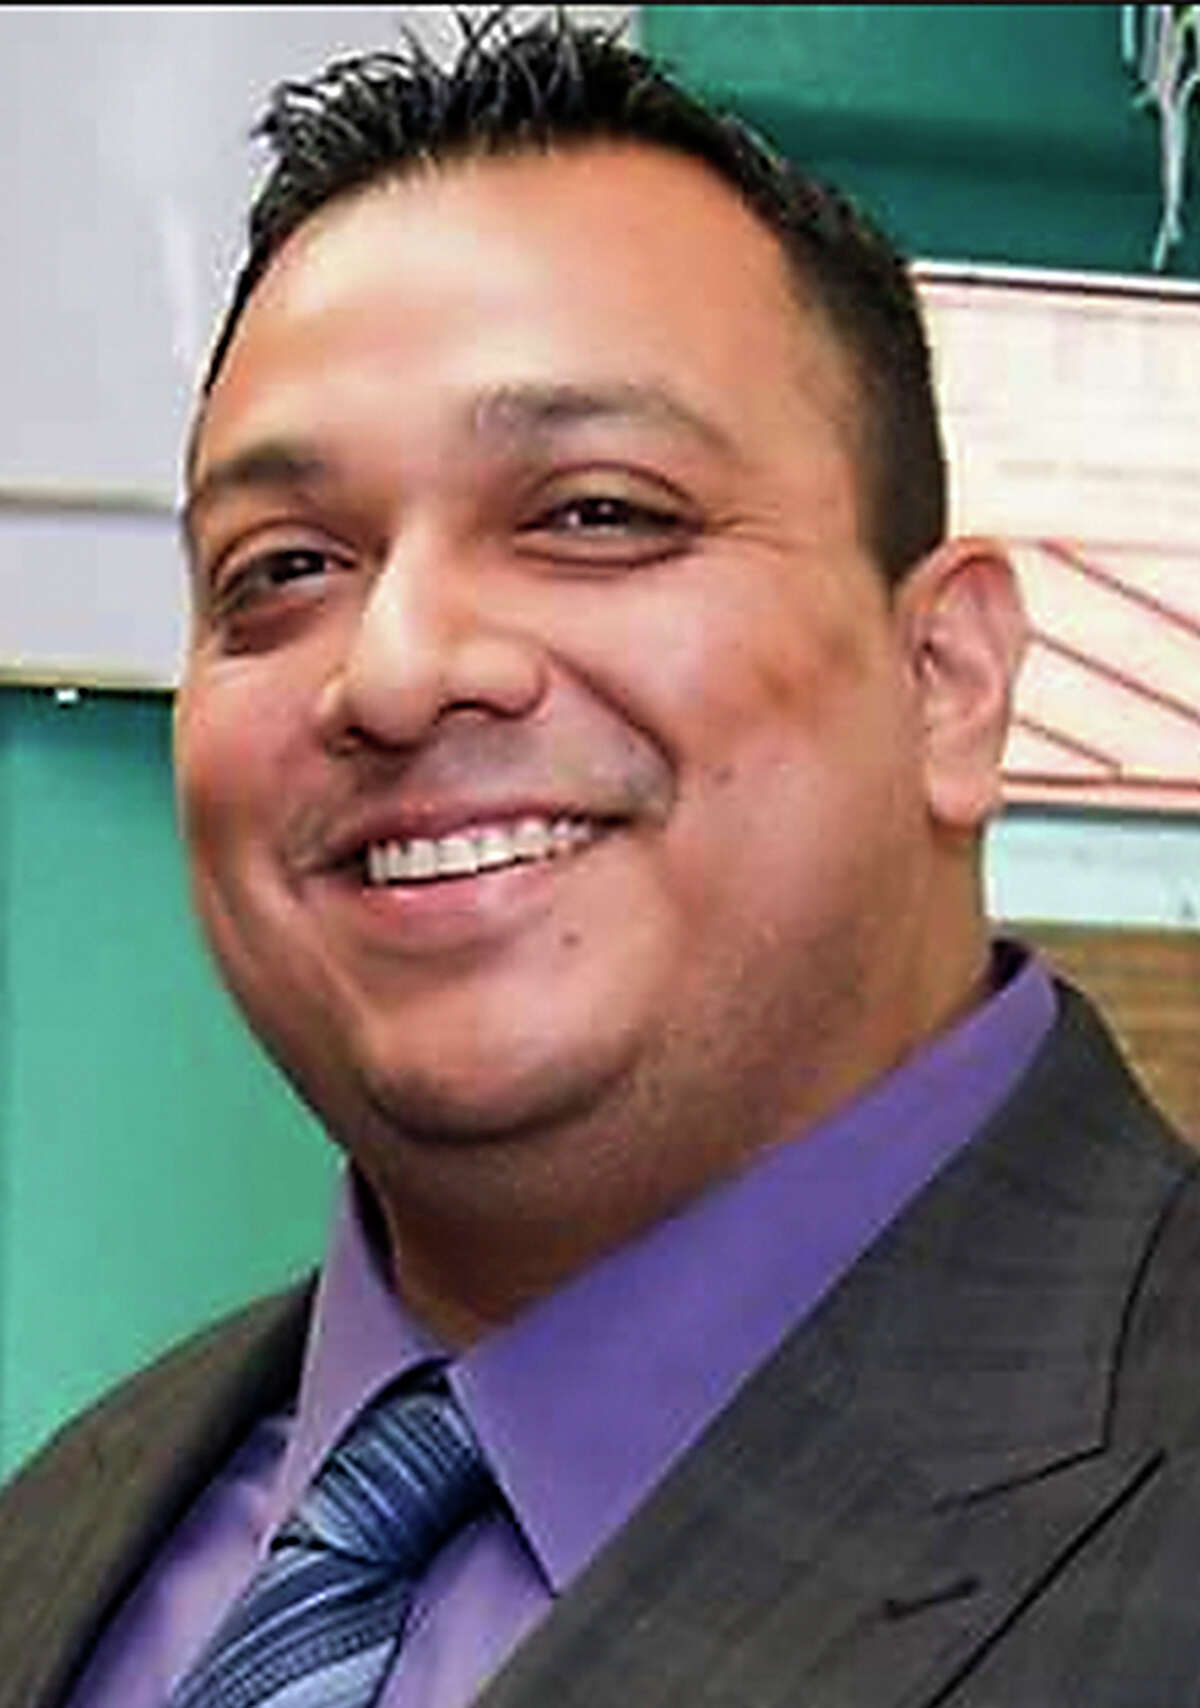 District 1 City Council Candidate -Jesus G. Reyes.